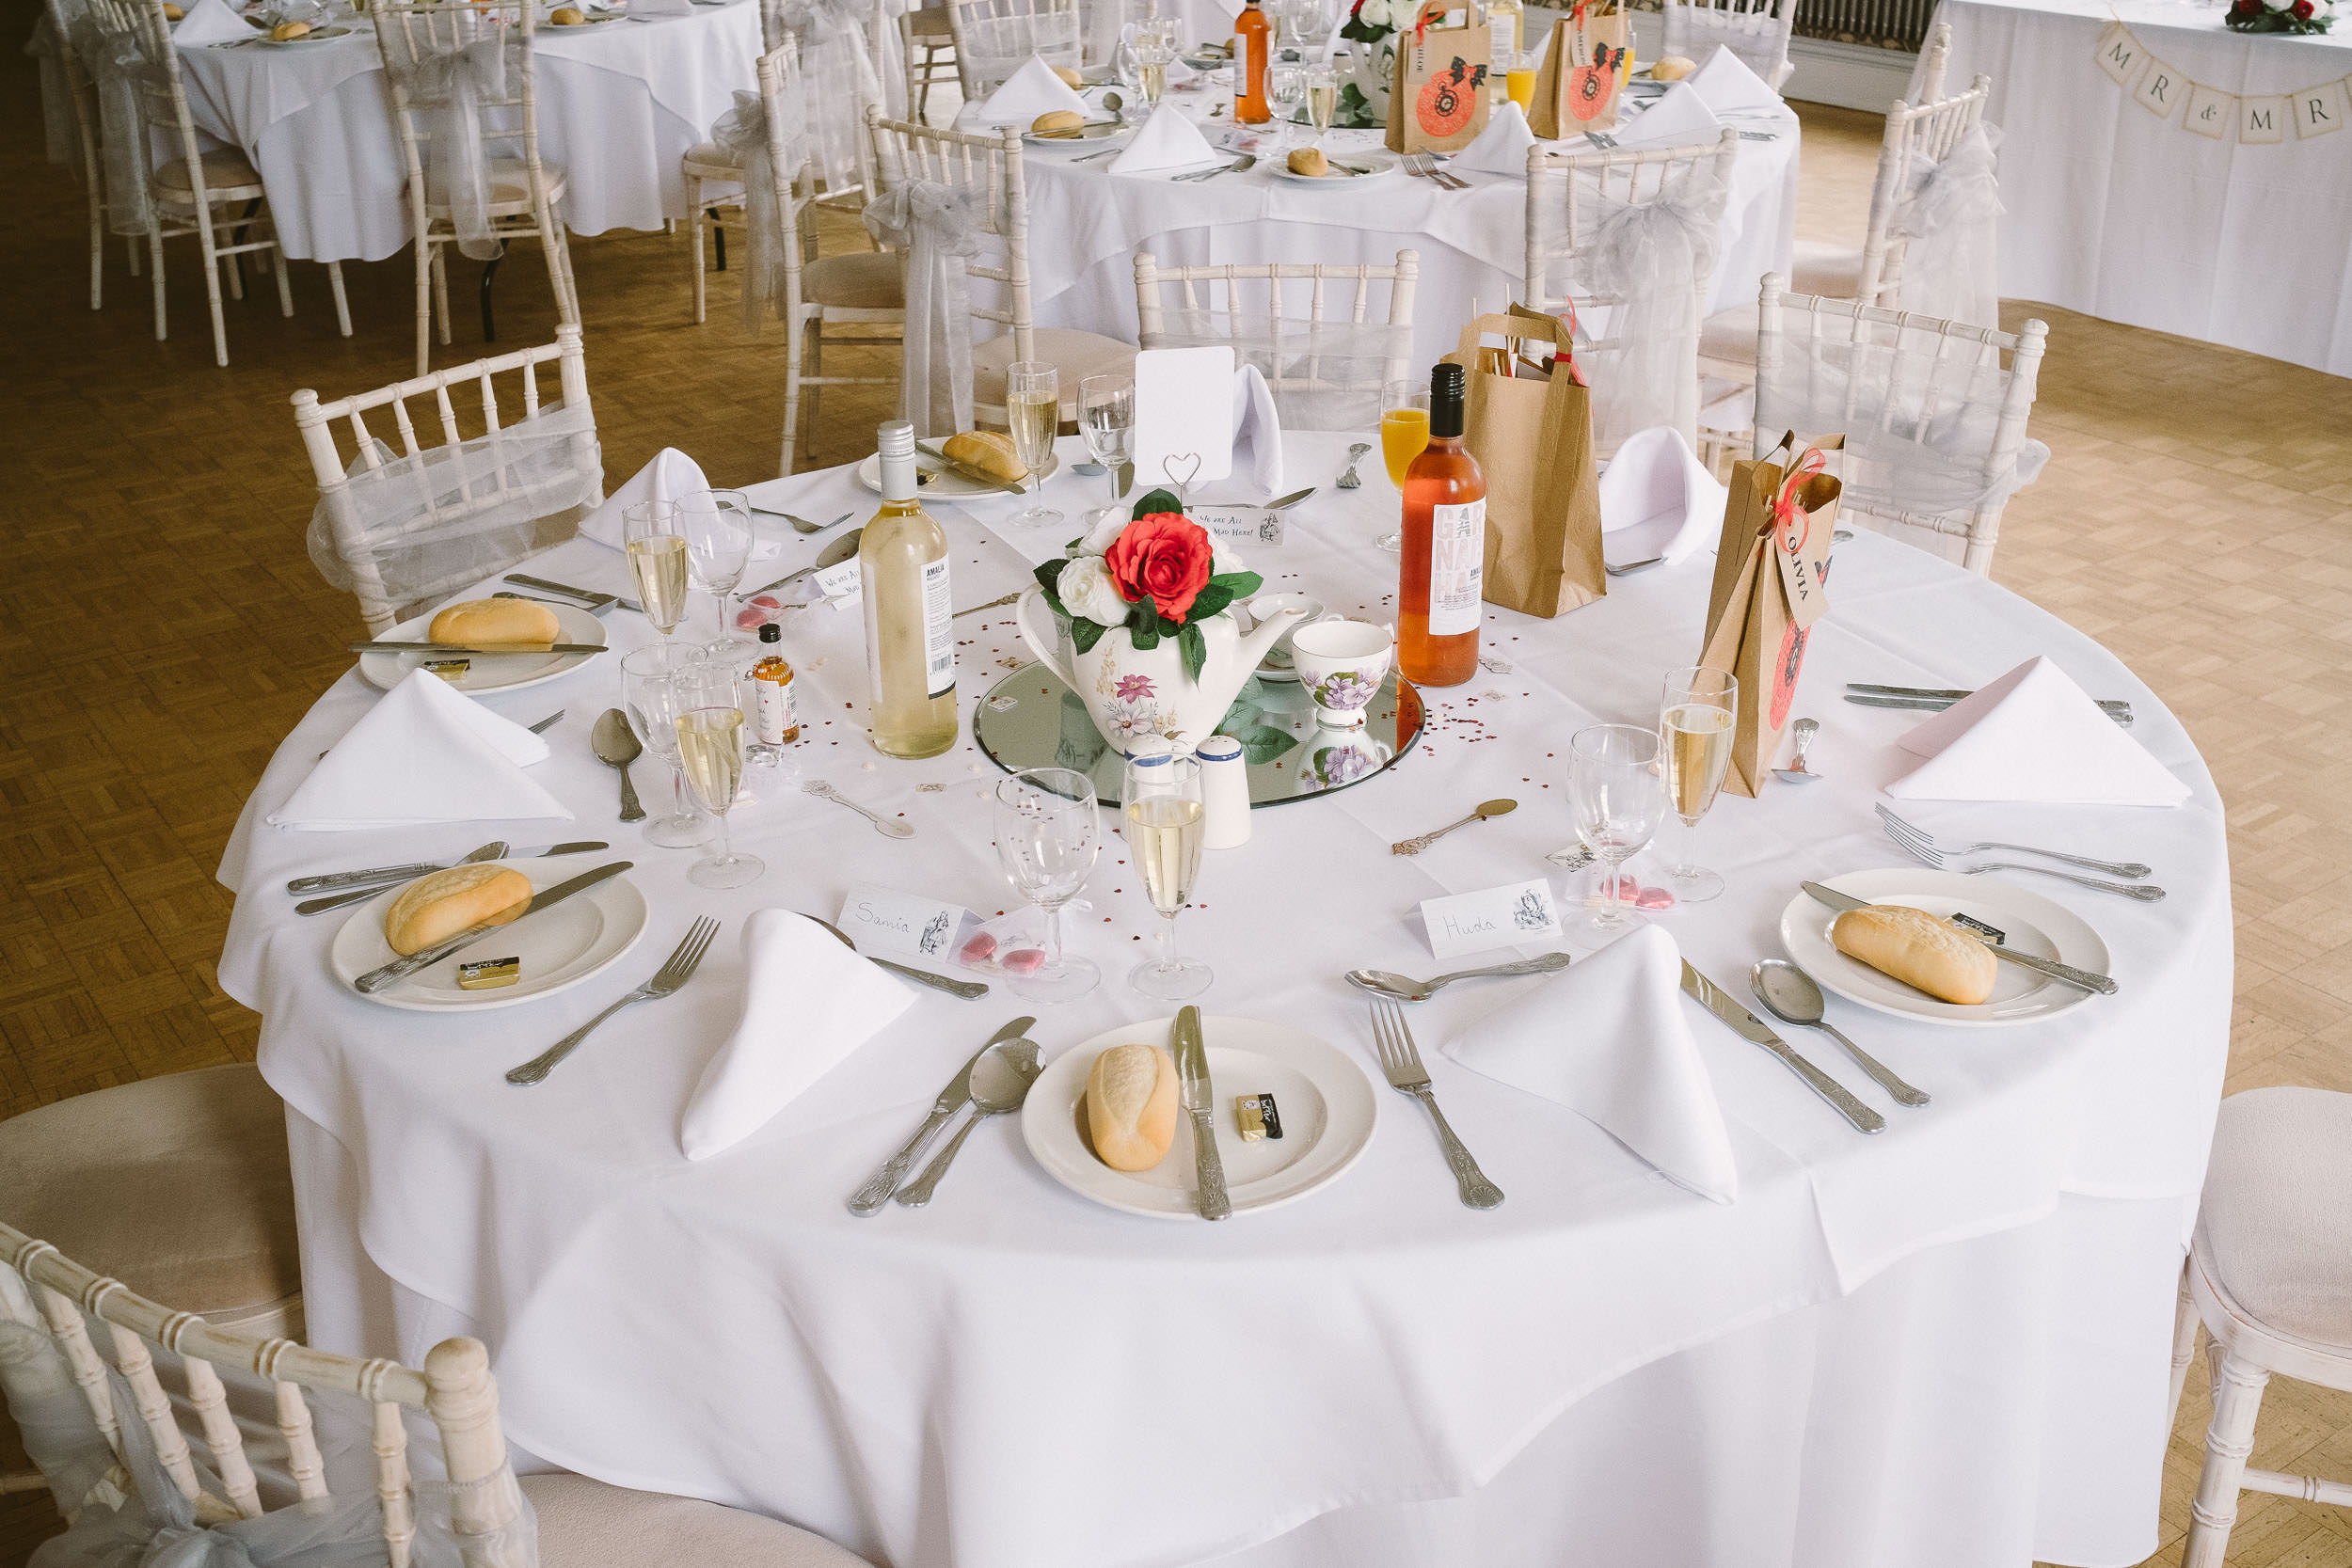 Table set up with Alice in Wonderland theme at Wallsend Hall